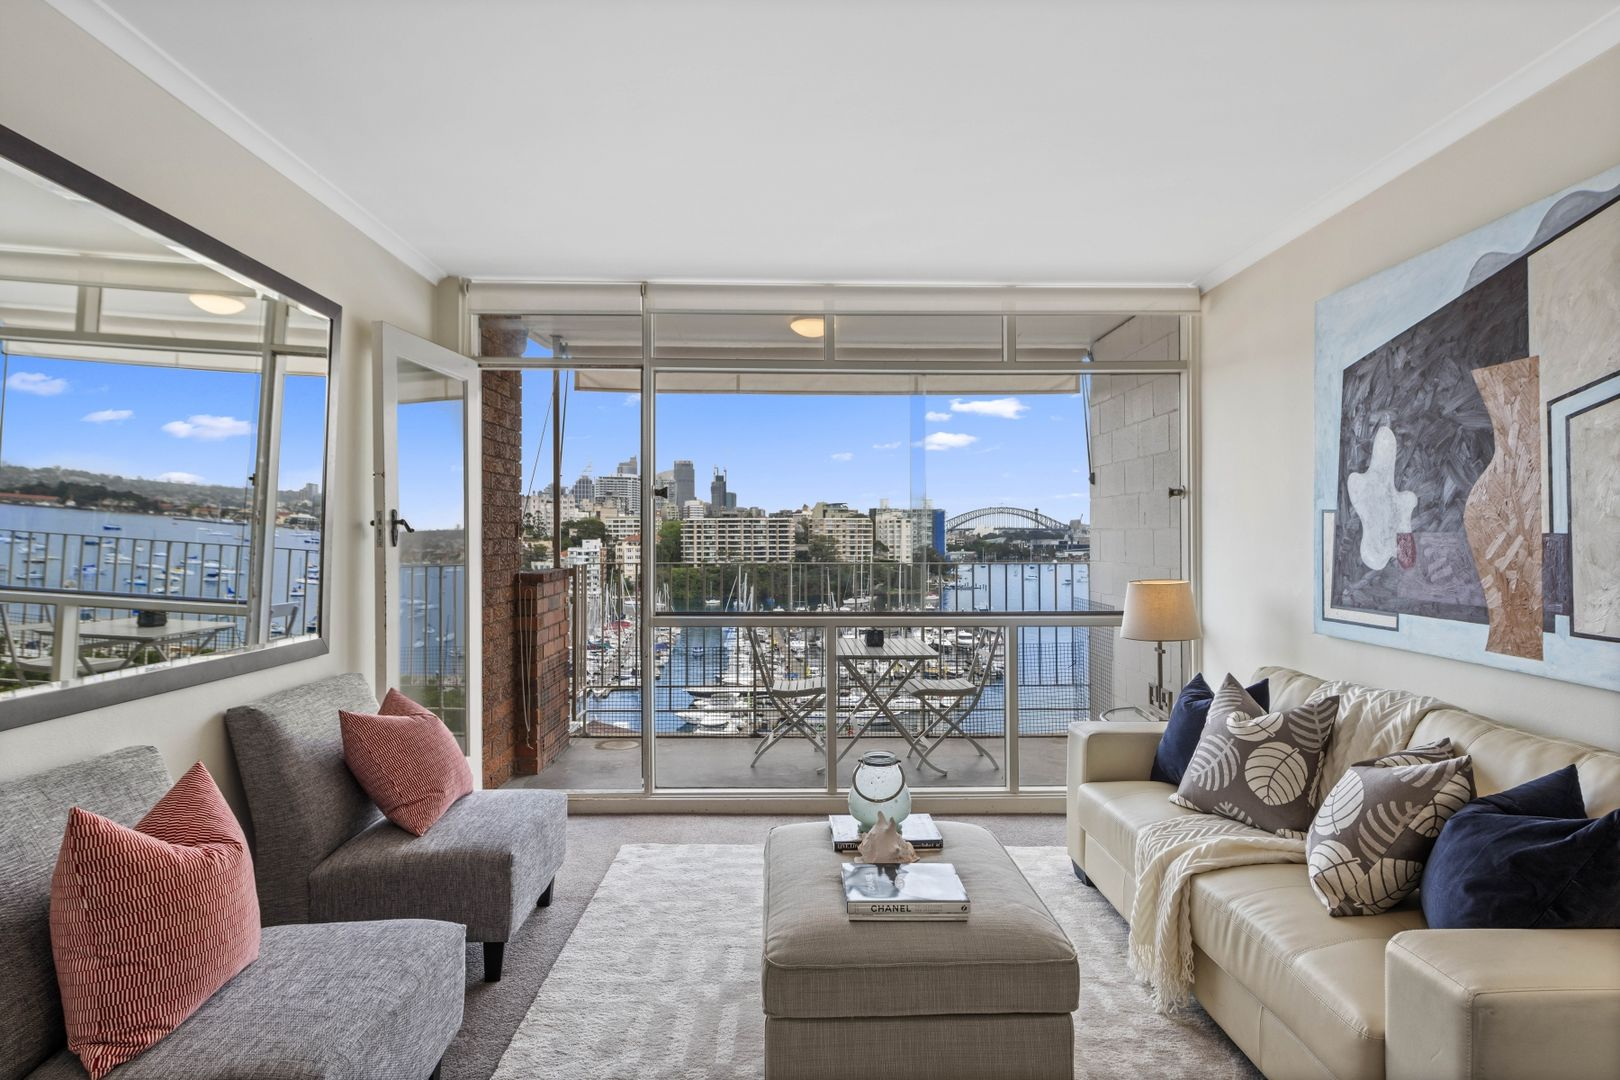 13/2 Annandale Street, Darling Point NSW 2027, Image 0